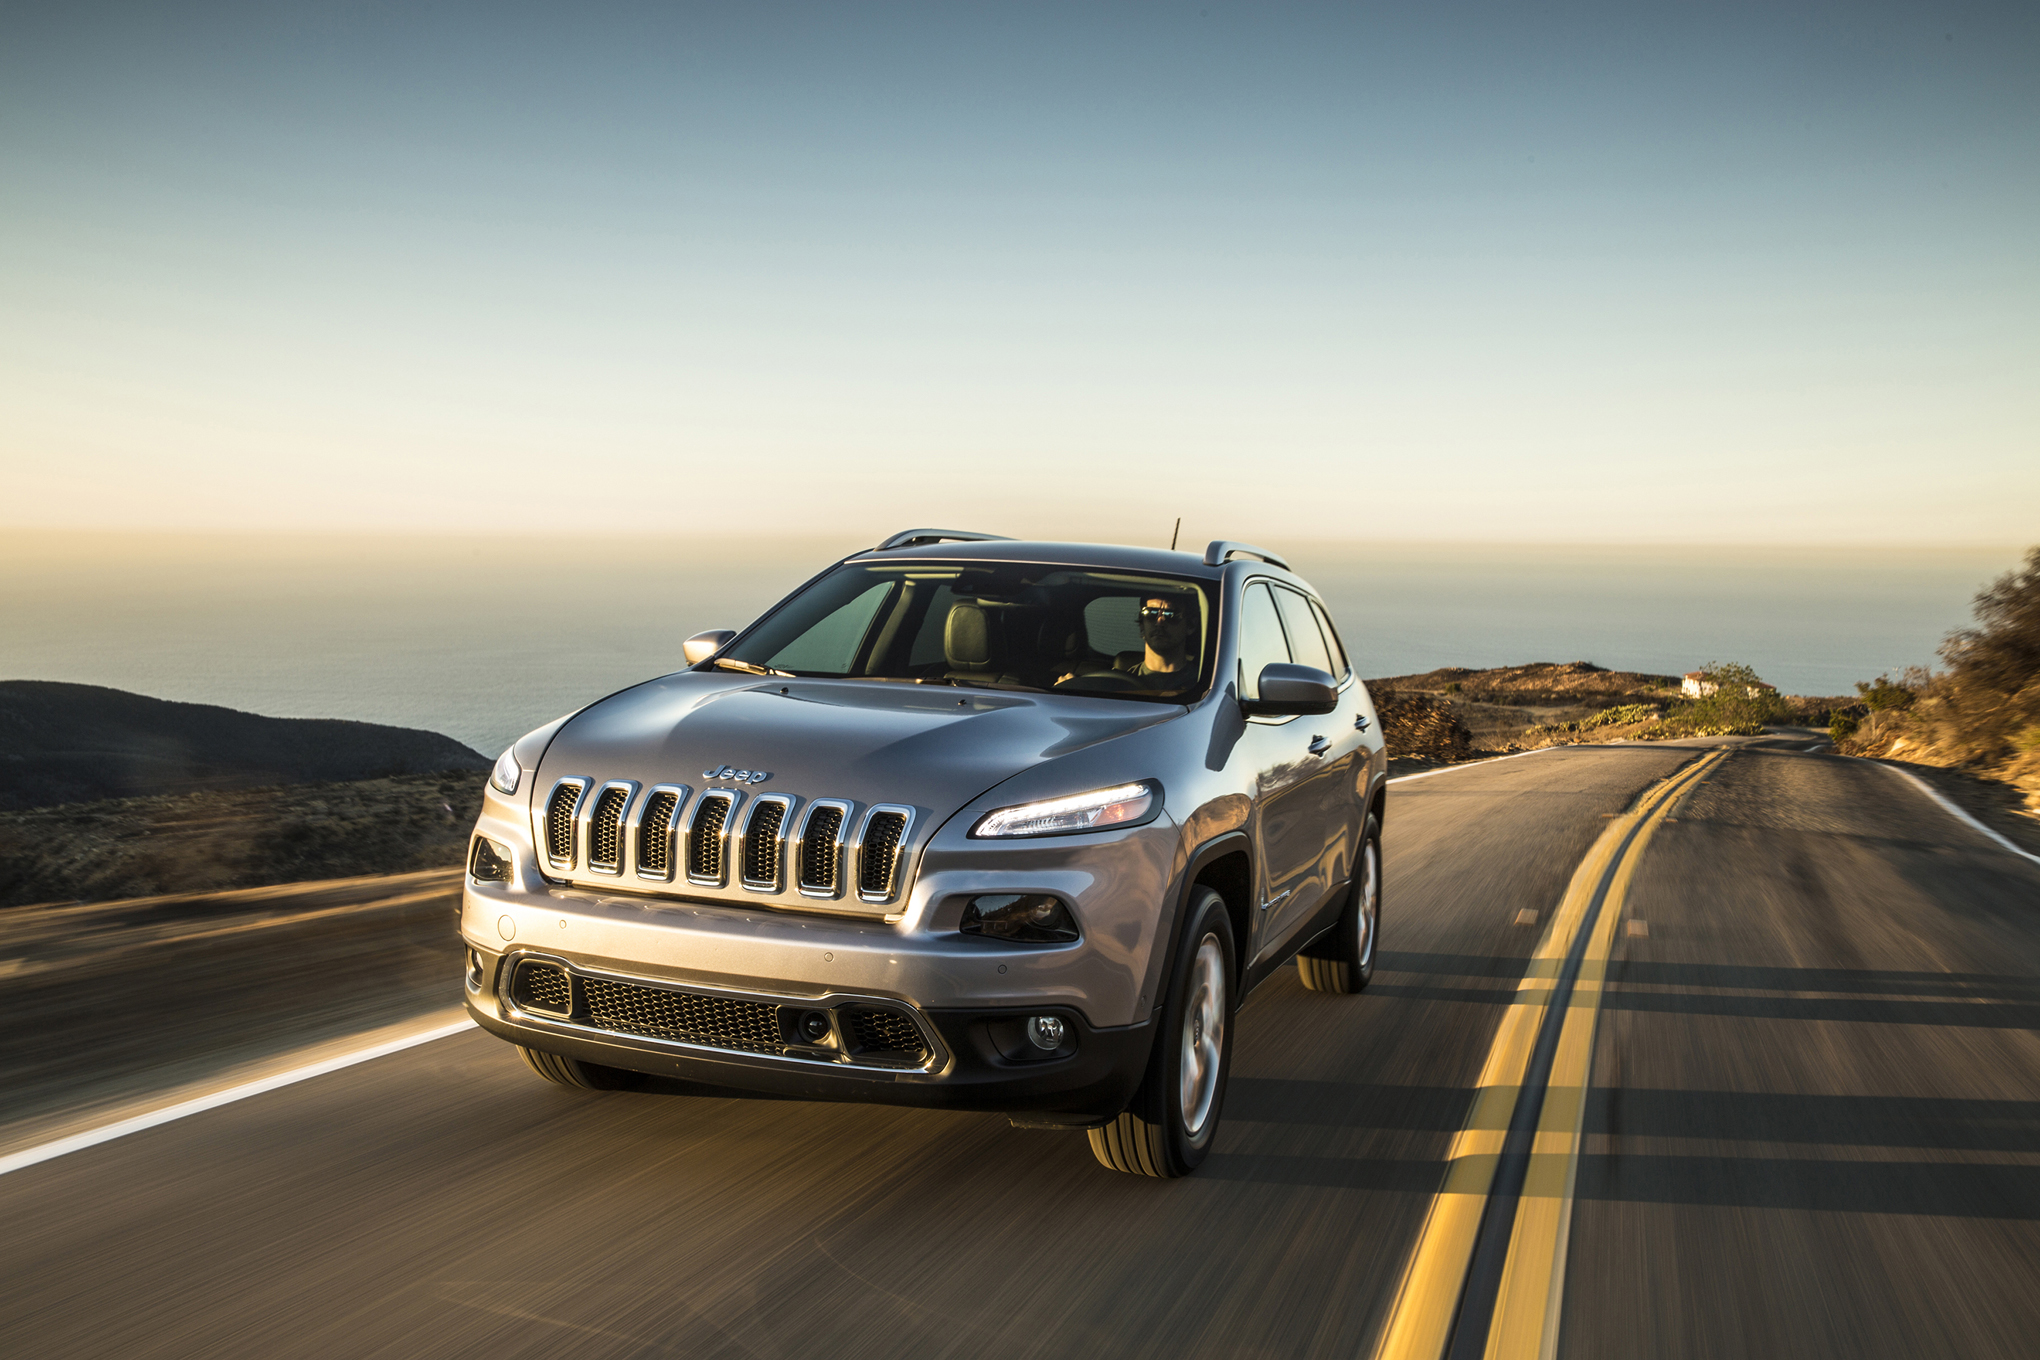 Stop Start Boosts 2015 Jeep Cherokee V 6 Fuel Economy By Up To 2 MPG